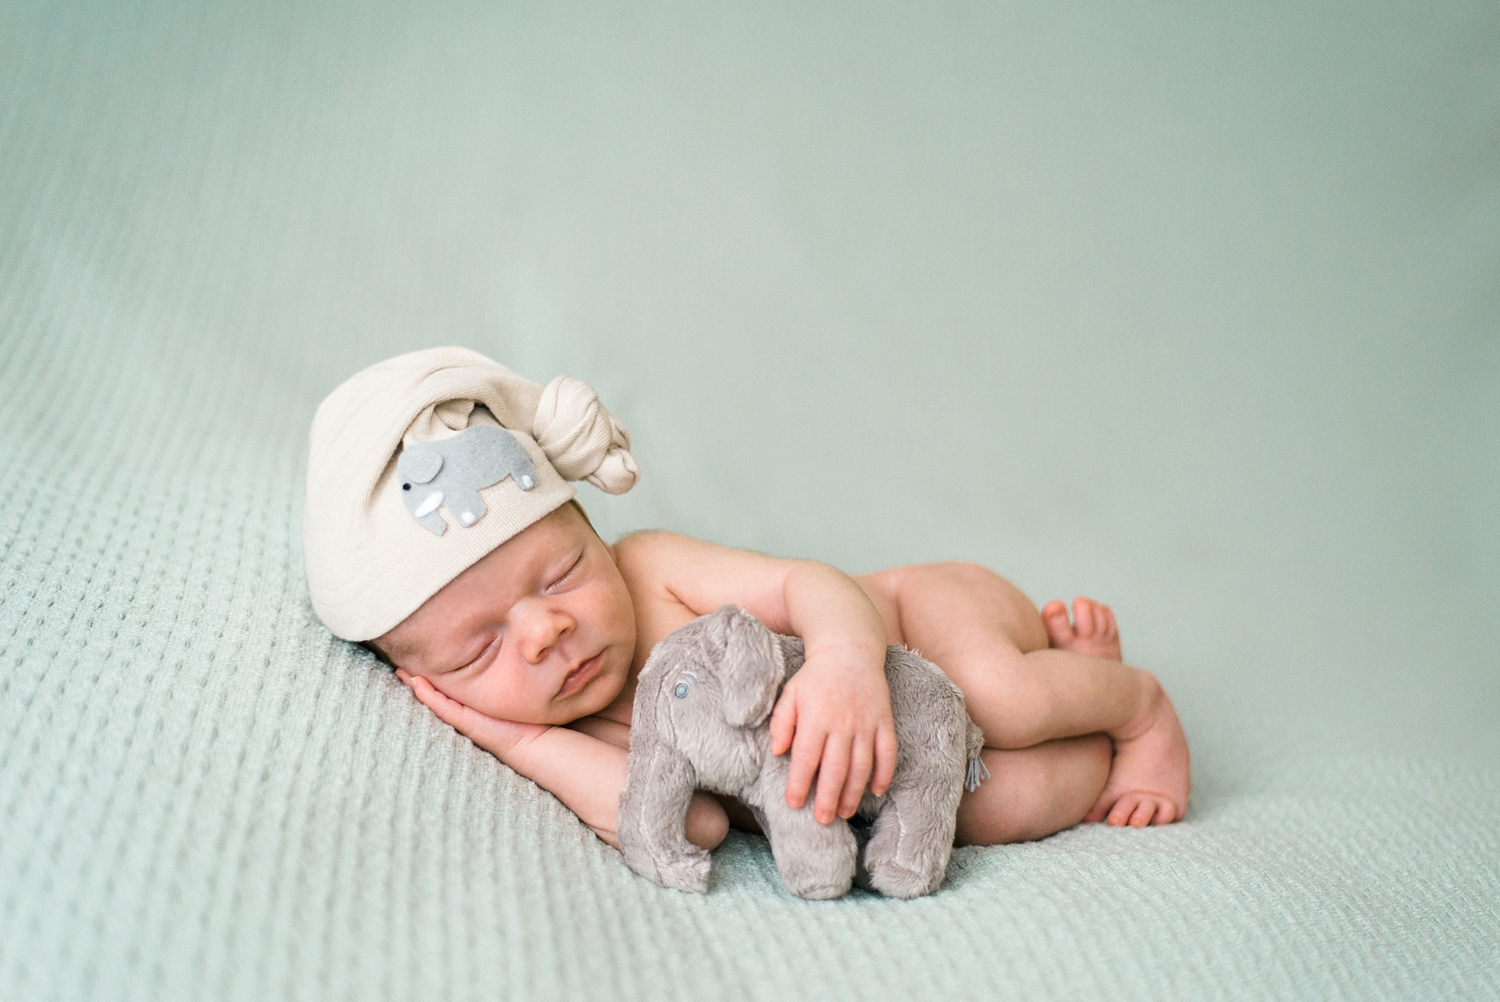 best-portland-oregon-newborn-photographer-sleeping-baby-boy-cuddling-with-elephant-stuffed-animal-shelley-marie-photography-40.jpg